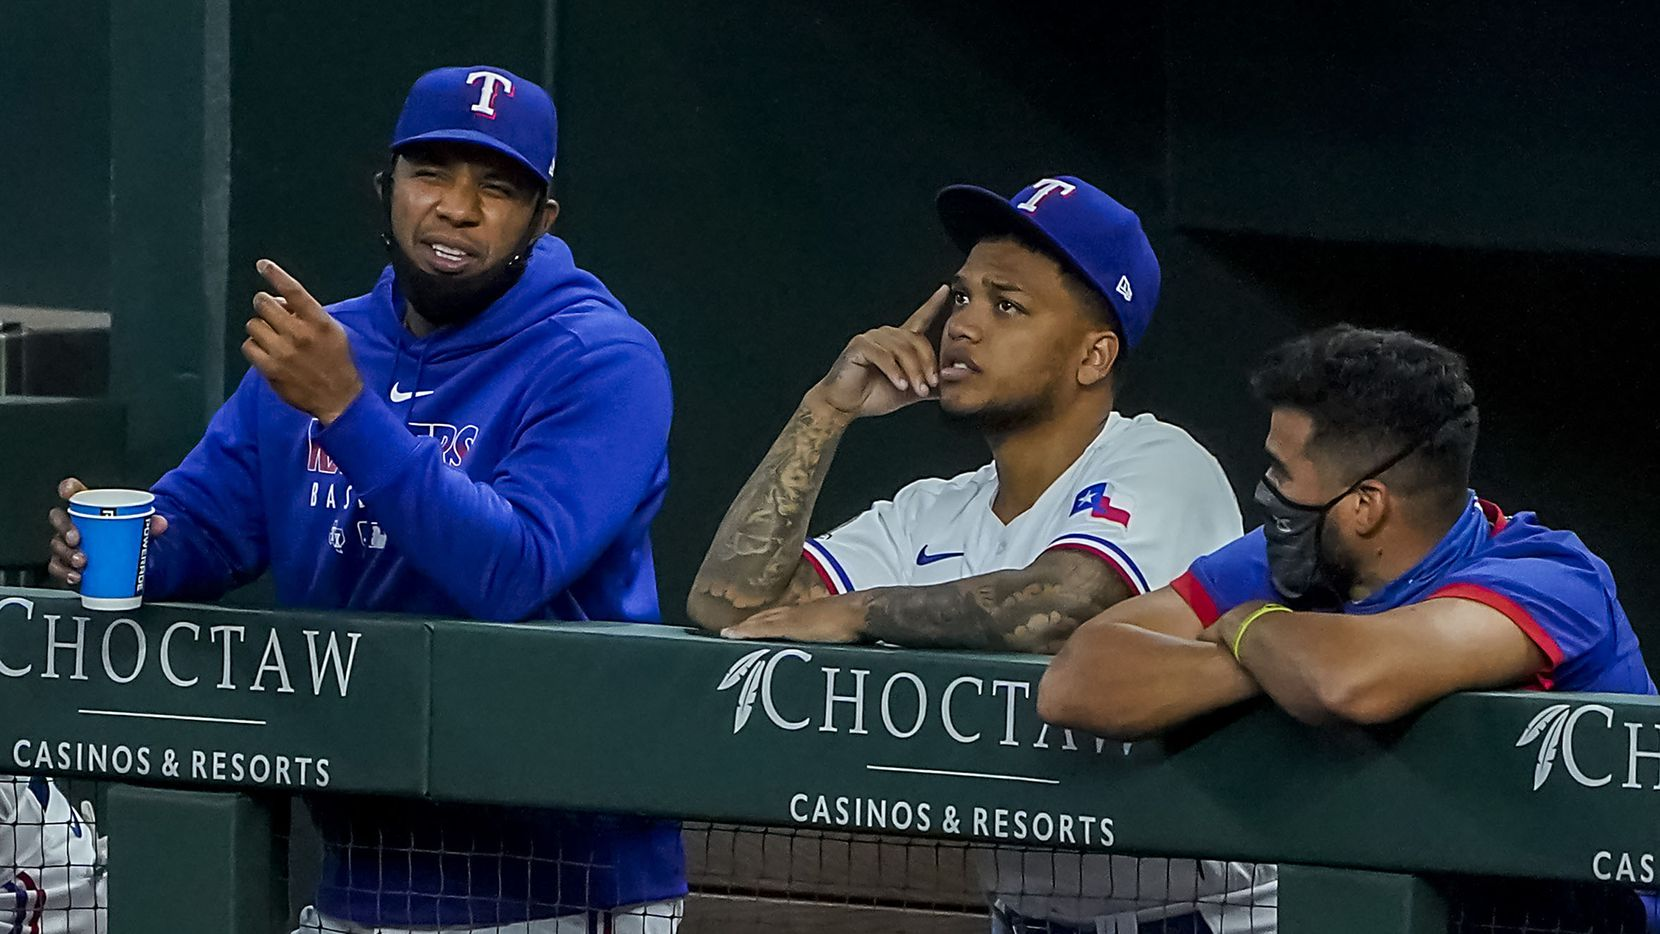 Texas Rangers shortstop Elvis Andrus (left) watches from the dugout with outfielder Willie Calhoun and catcher Robinson Chirinos during the seventh inning against the San Diego Padres at Globe Life Field on Tuesday, Aug. 18, 2020.